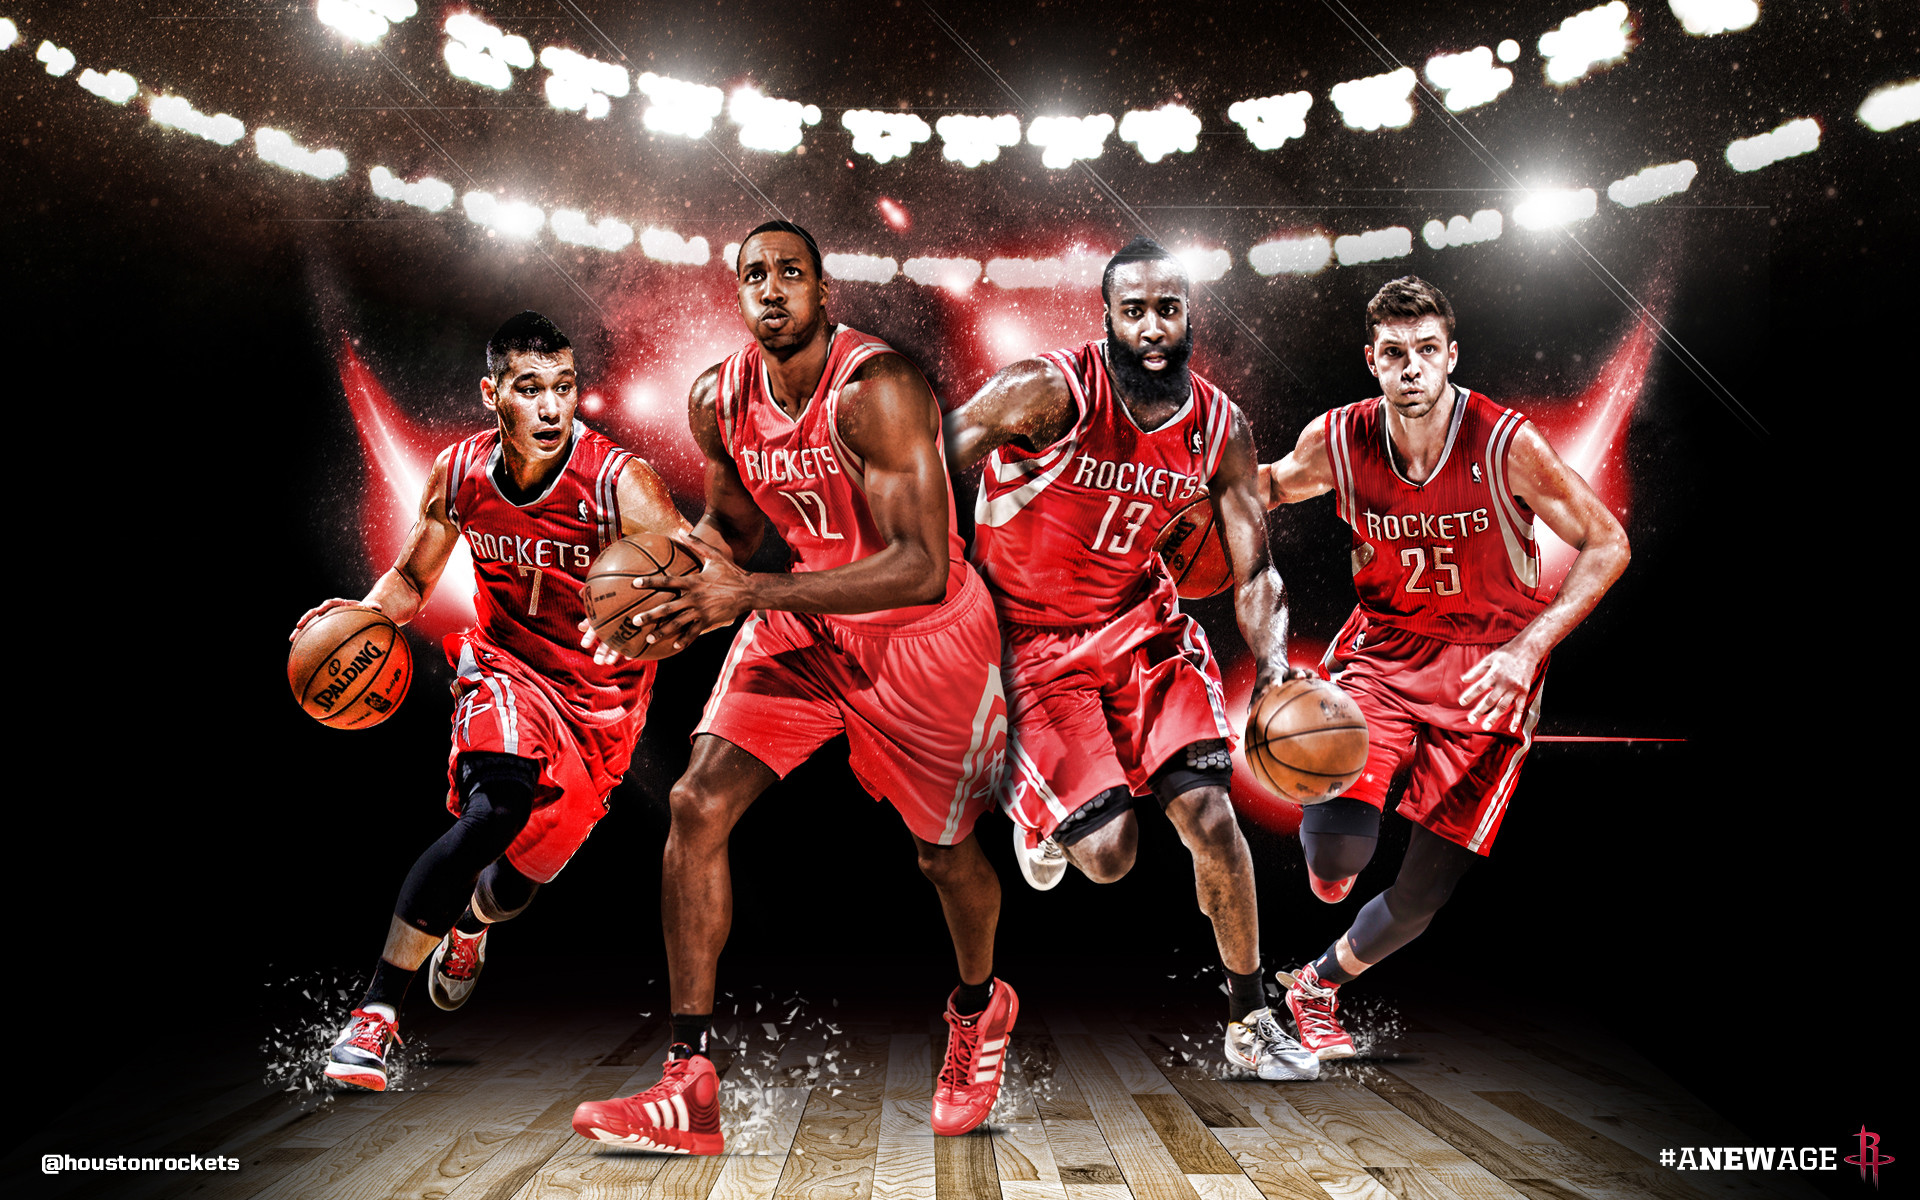 Nba wallpapers 2018 new 64 images 1920x1080 nba wallpapers 55 wallpapers voltagebd Choice Image